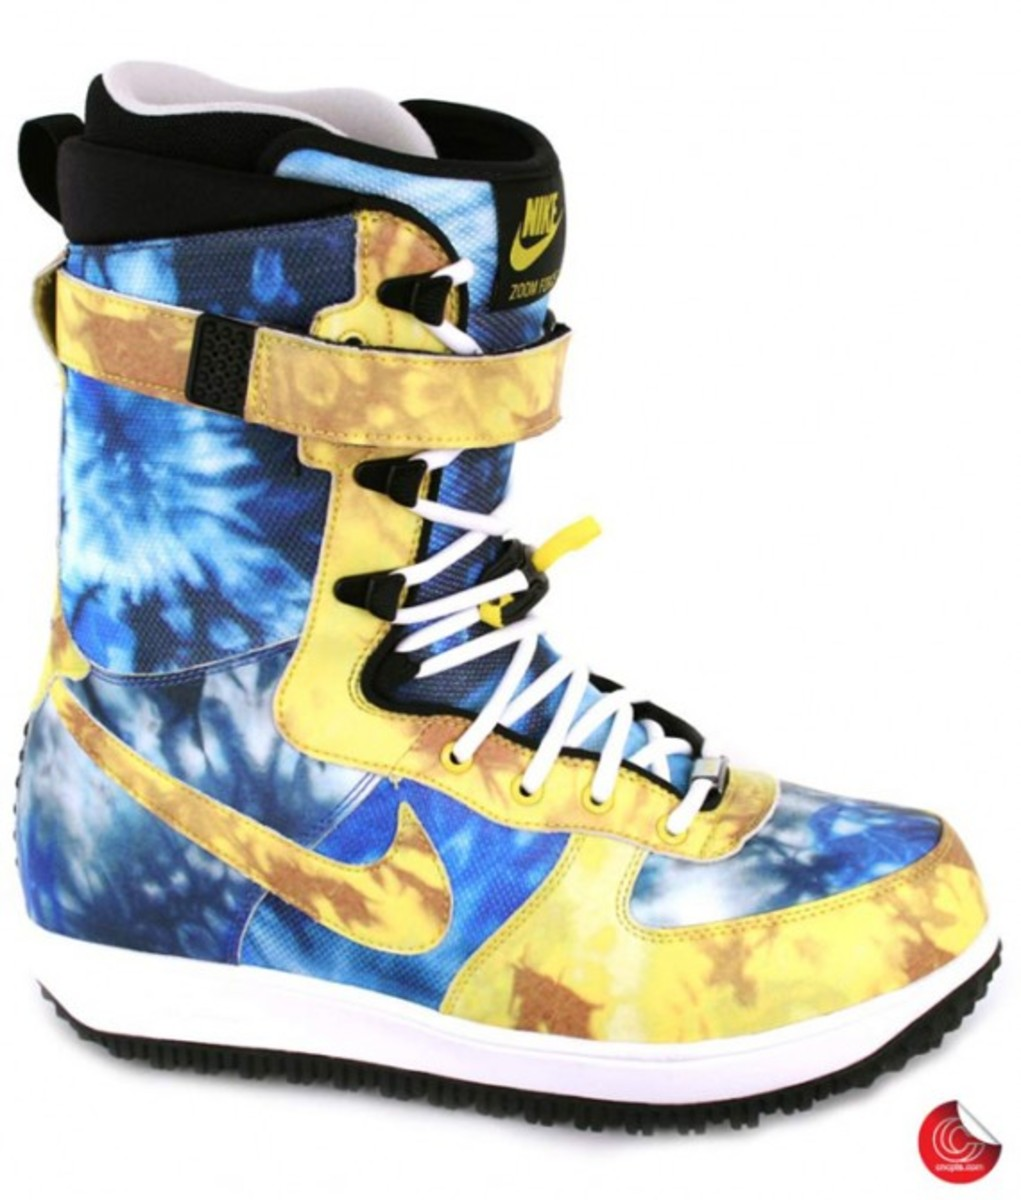 nike_snowboarding_boots_2